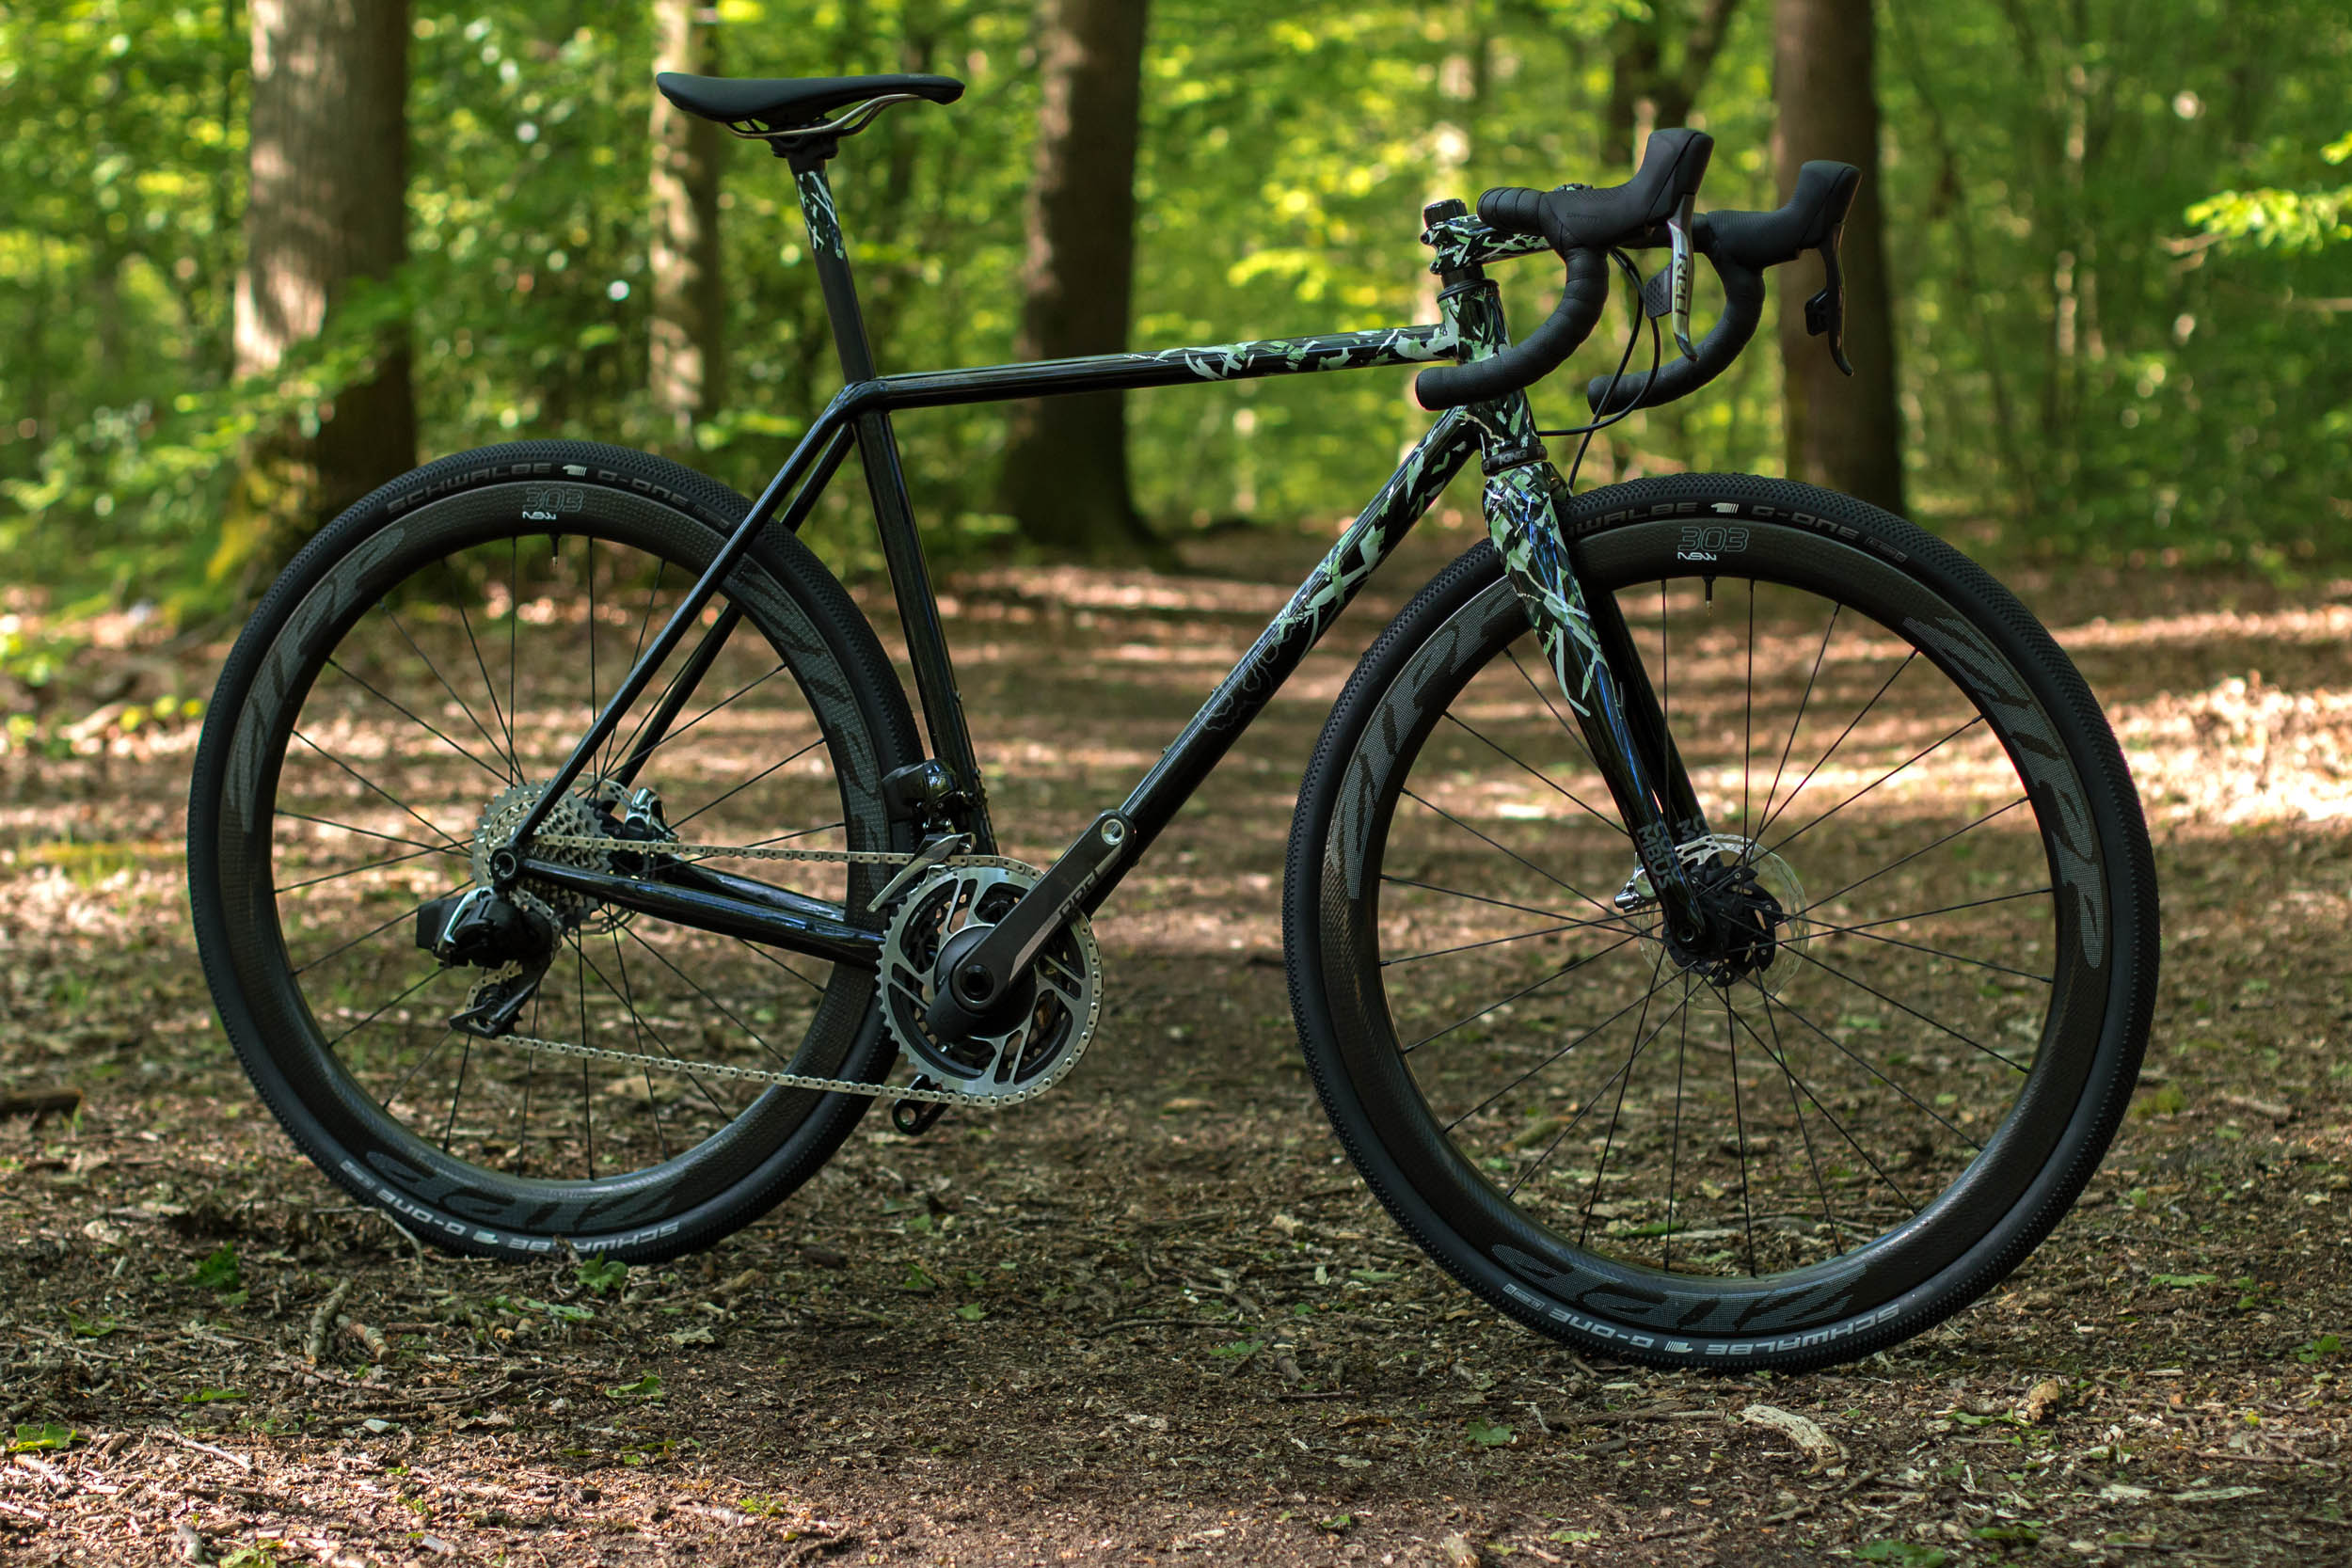 quirk_cycles_mamtor_3DPrinted_build_02.jpg